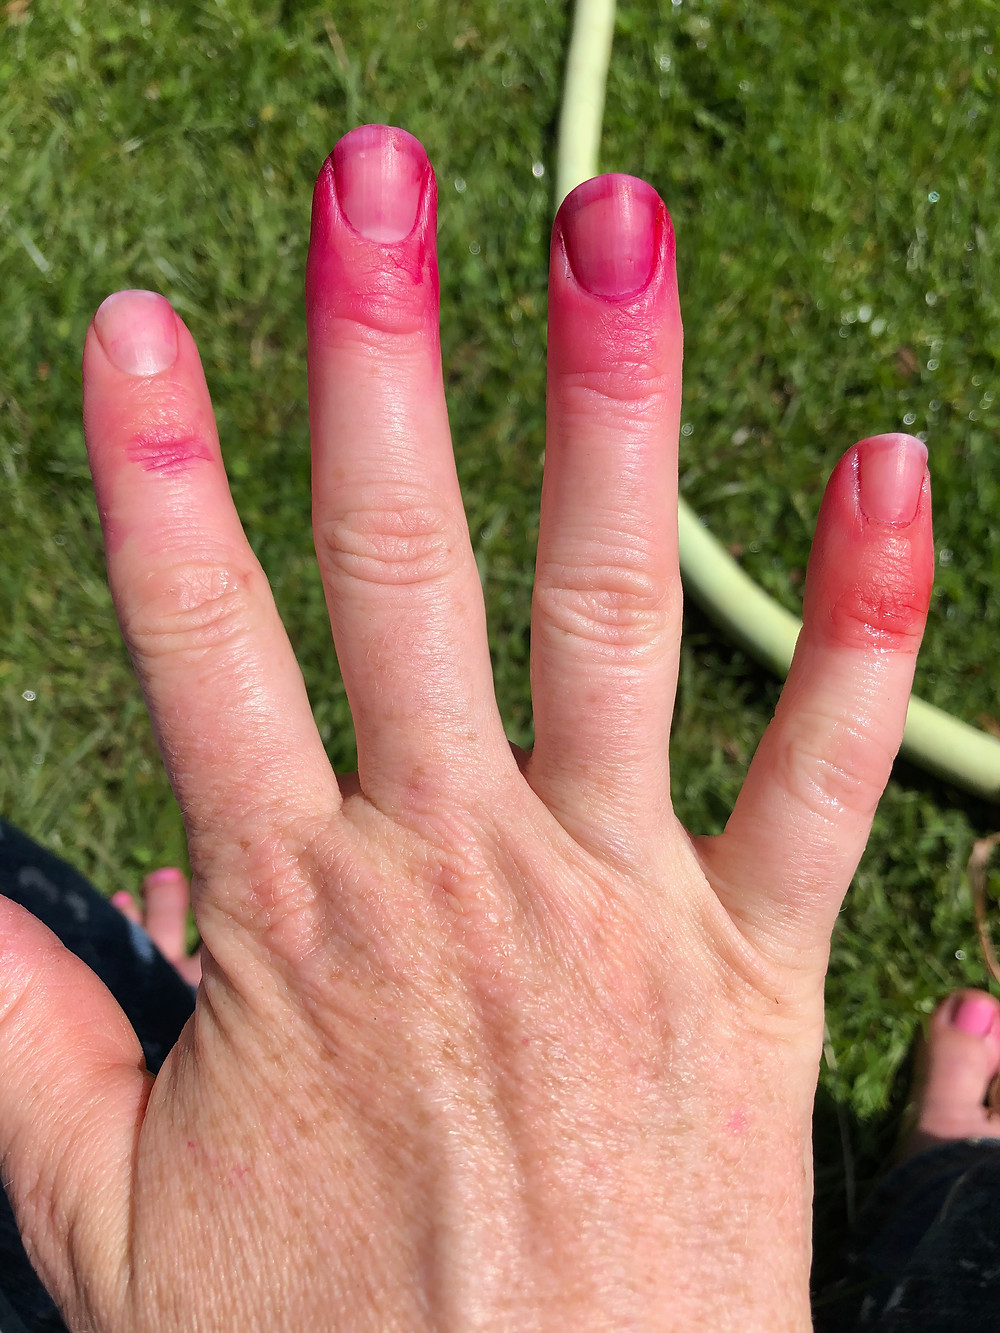 Hand with bright pink fingertips from leaking vinyl gloves.